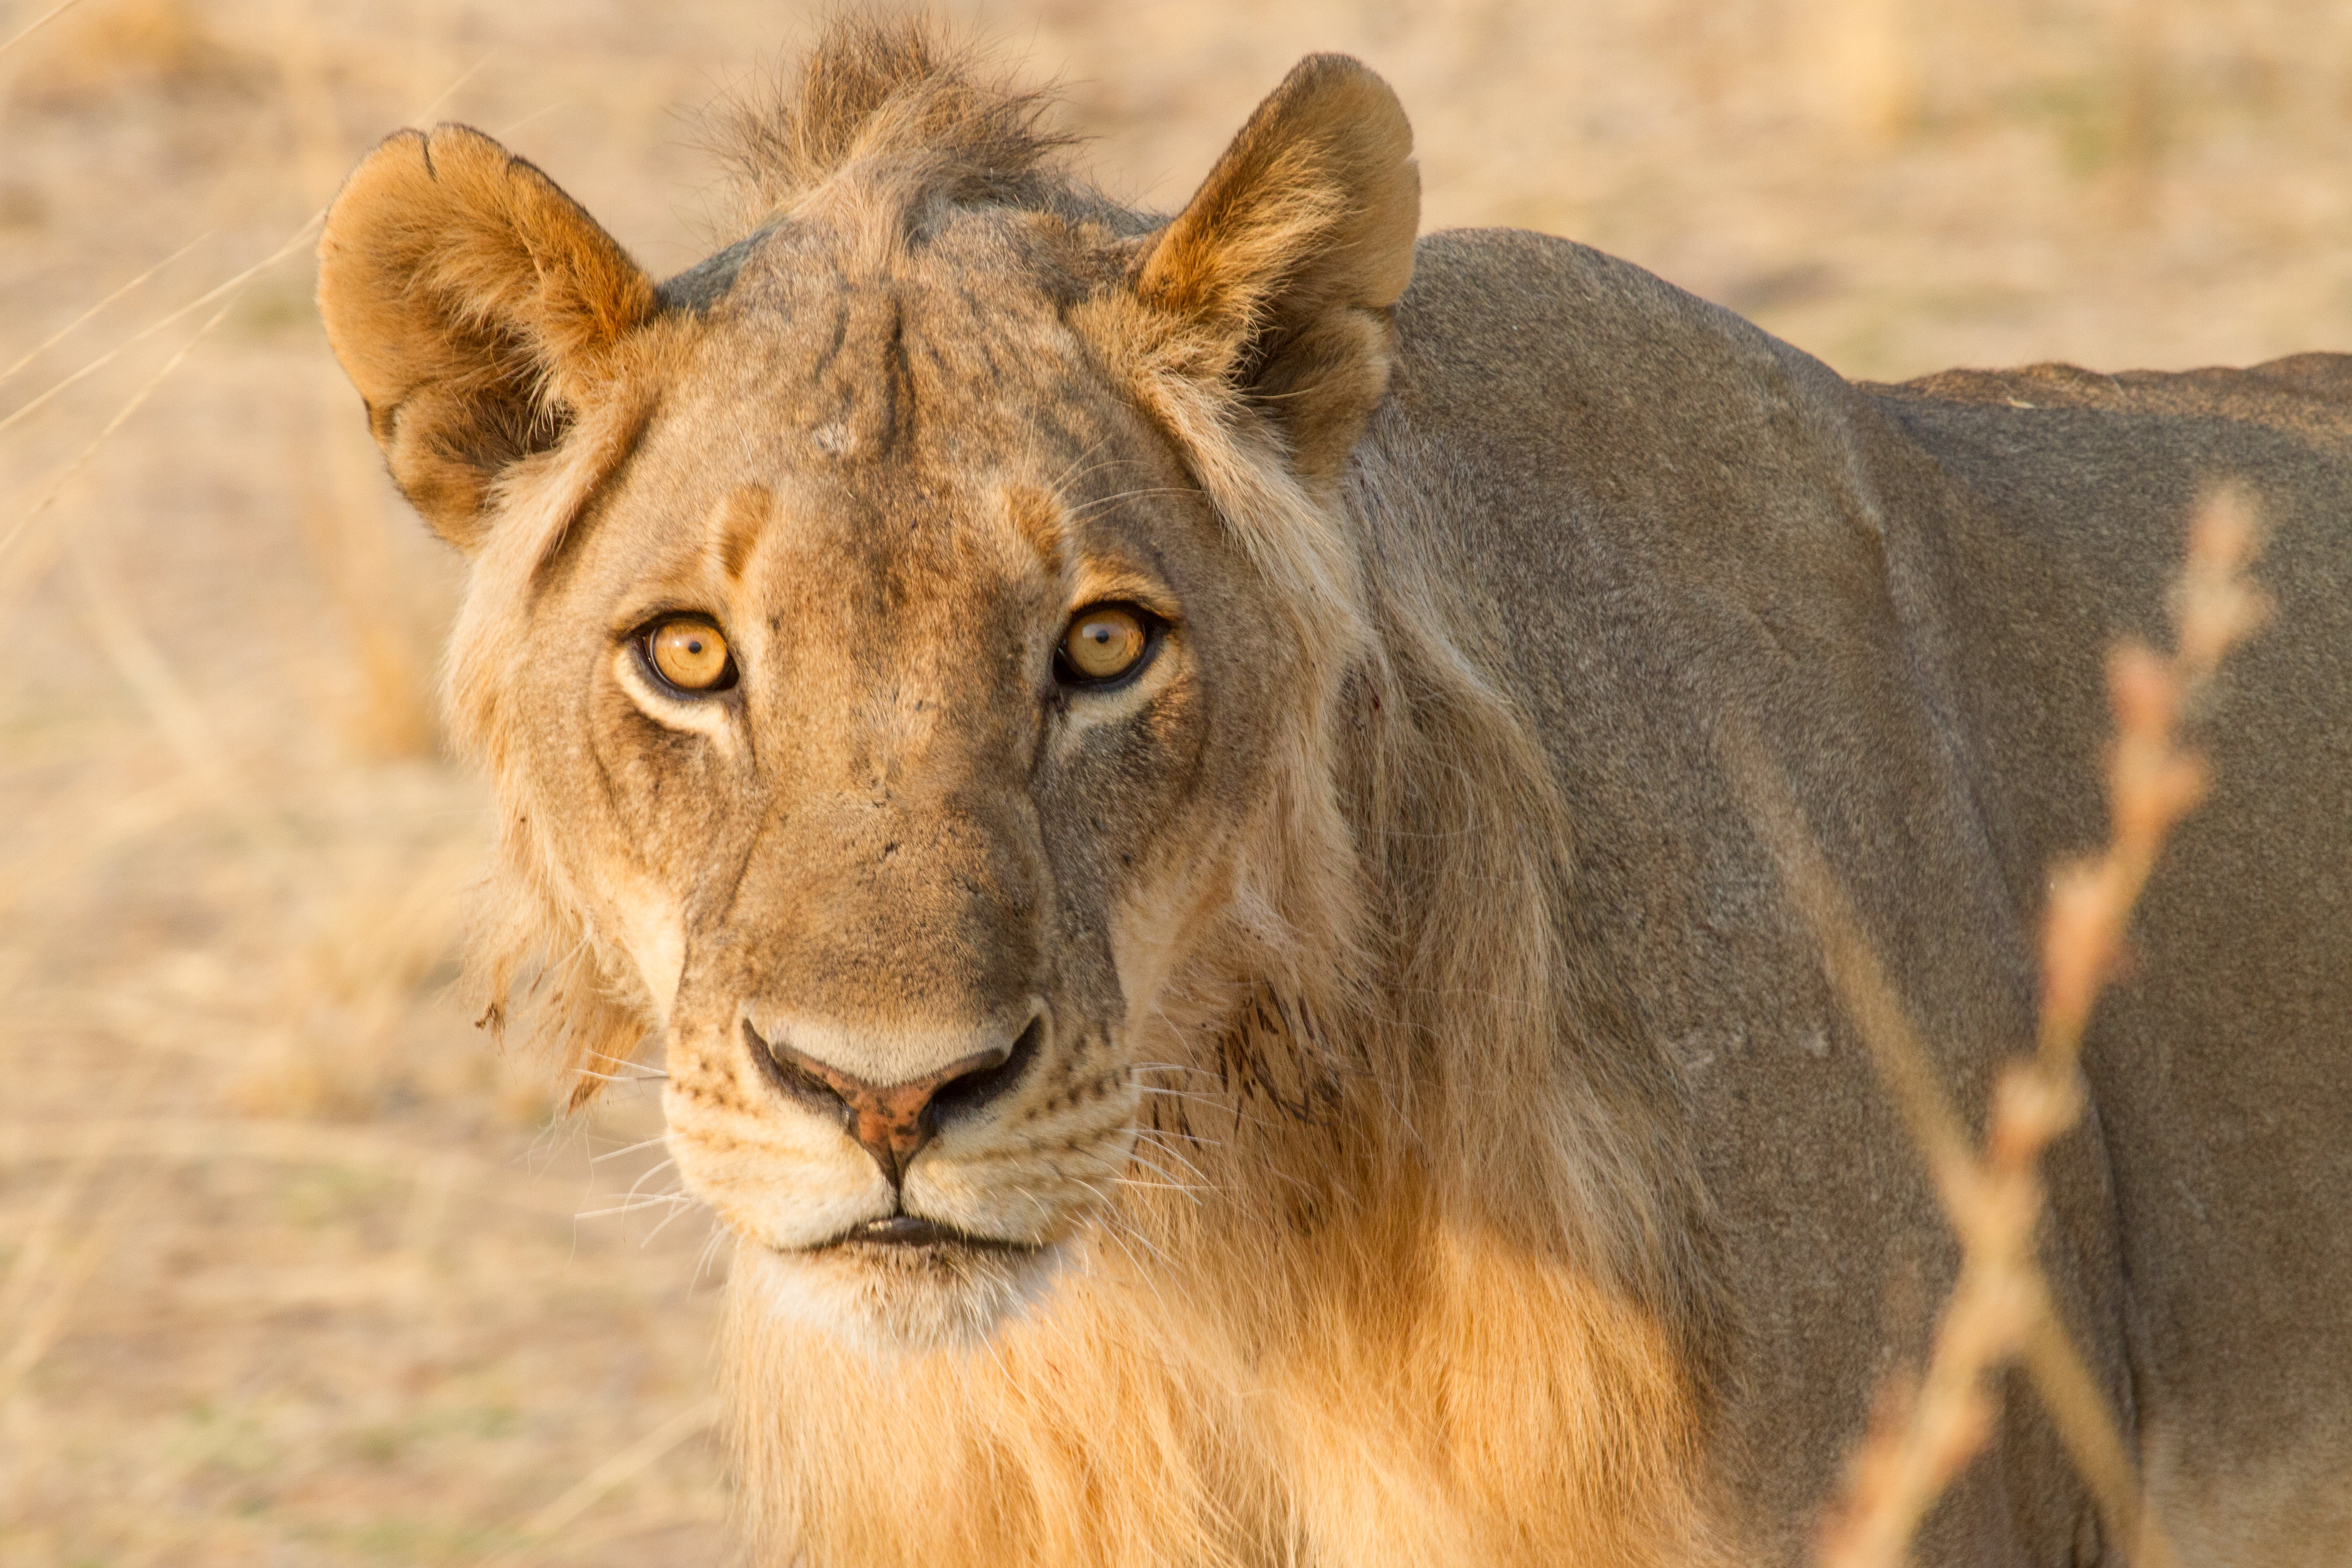 154136 download wallpaper Animals, Lioness, Mustache, Moustache, Predator, Ears screensavers and pictures for free